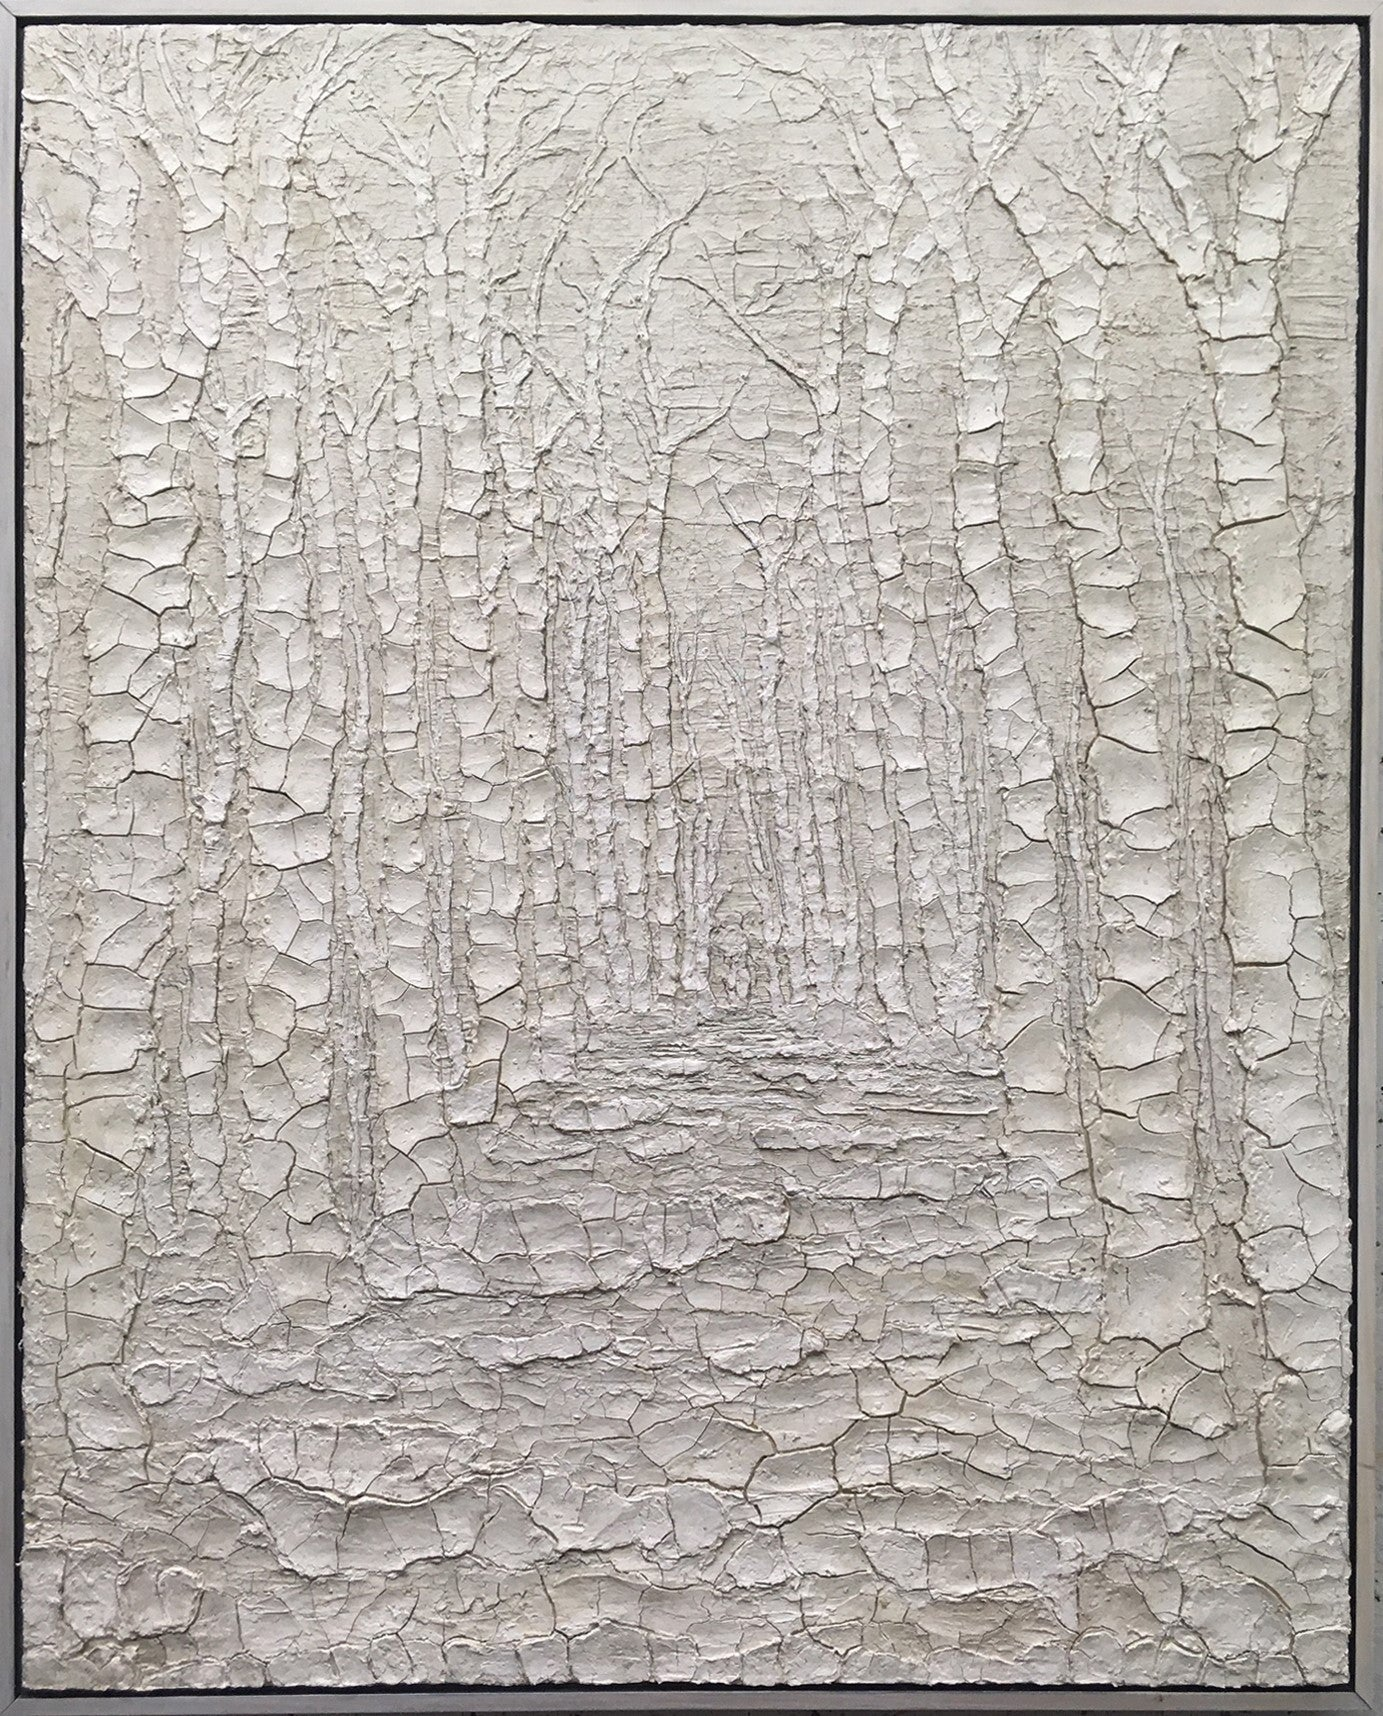 White Light: Large Abstracted Landscape Painting of a Forest in White Clay